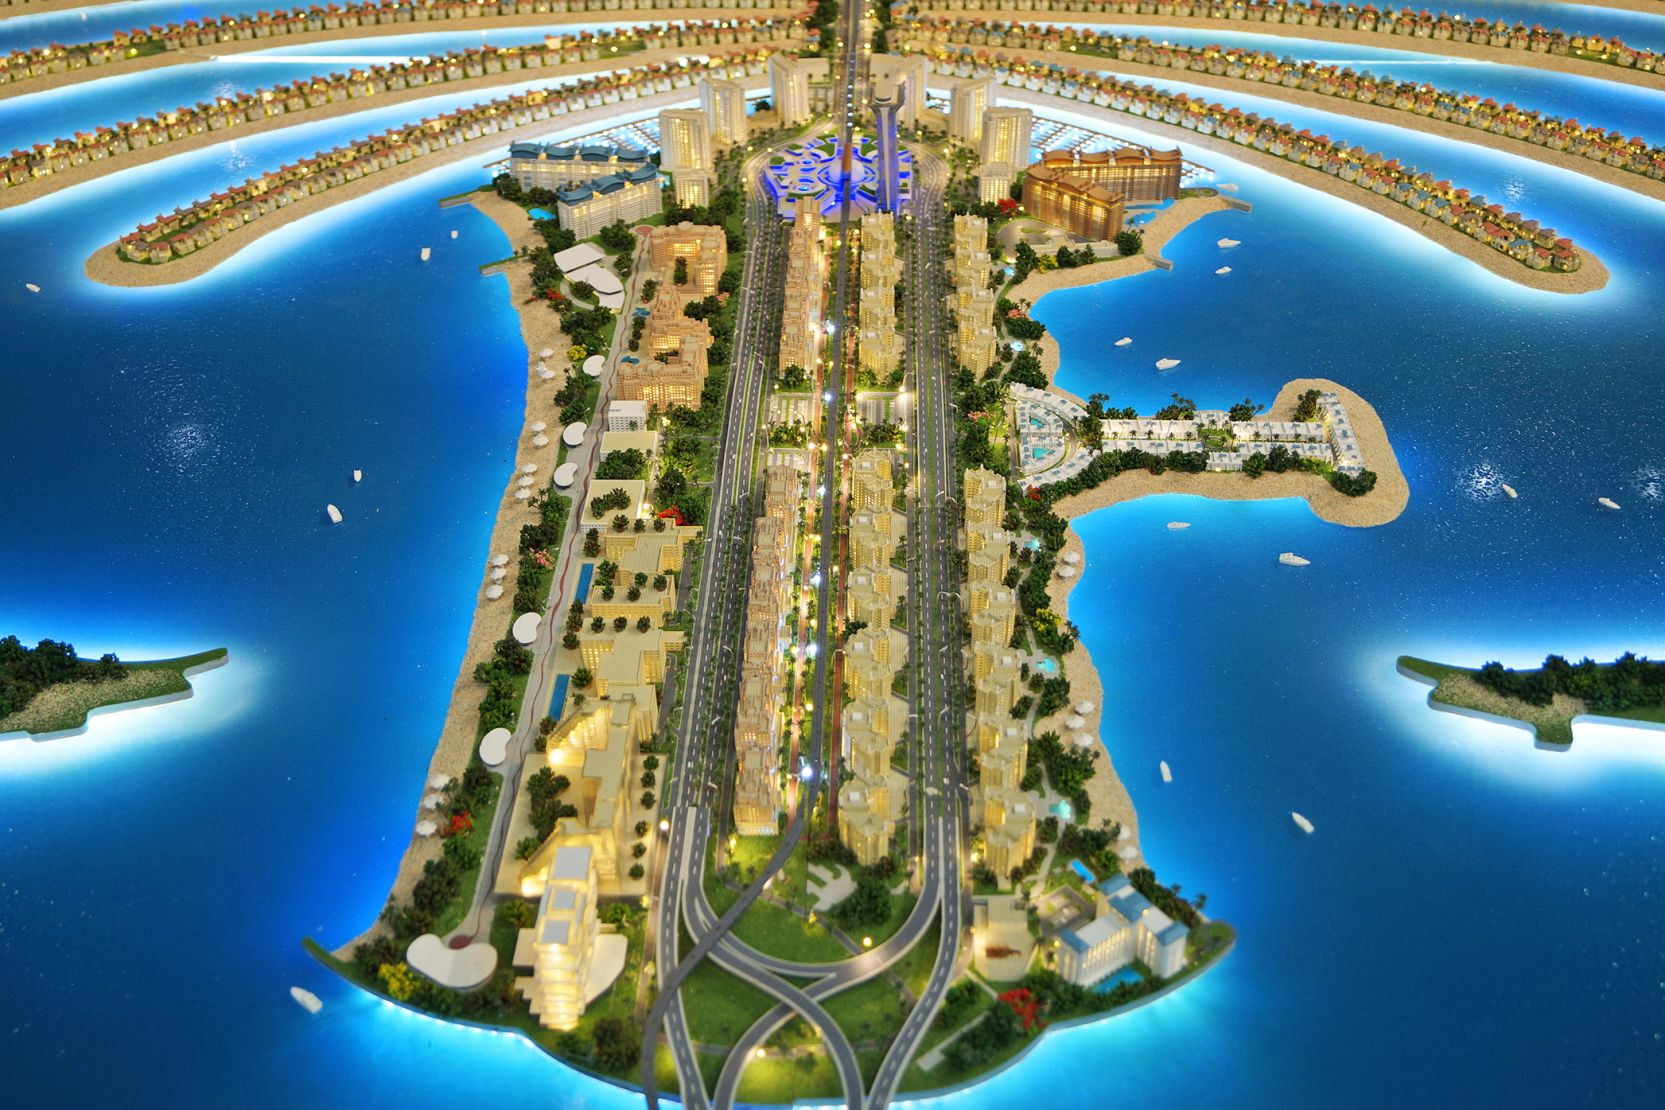 Palm Jumeirah trunk, Dubai, developer's masterplan model